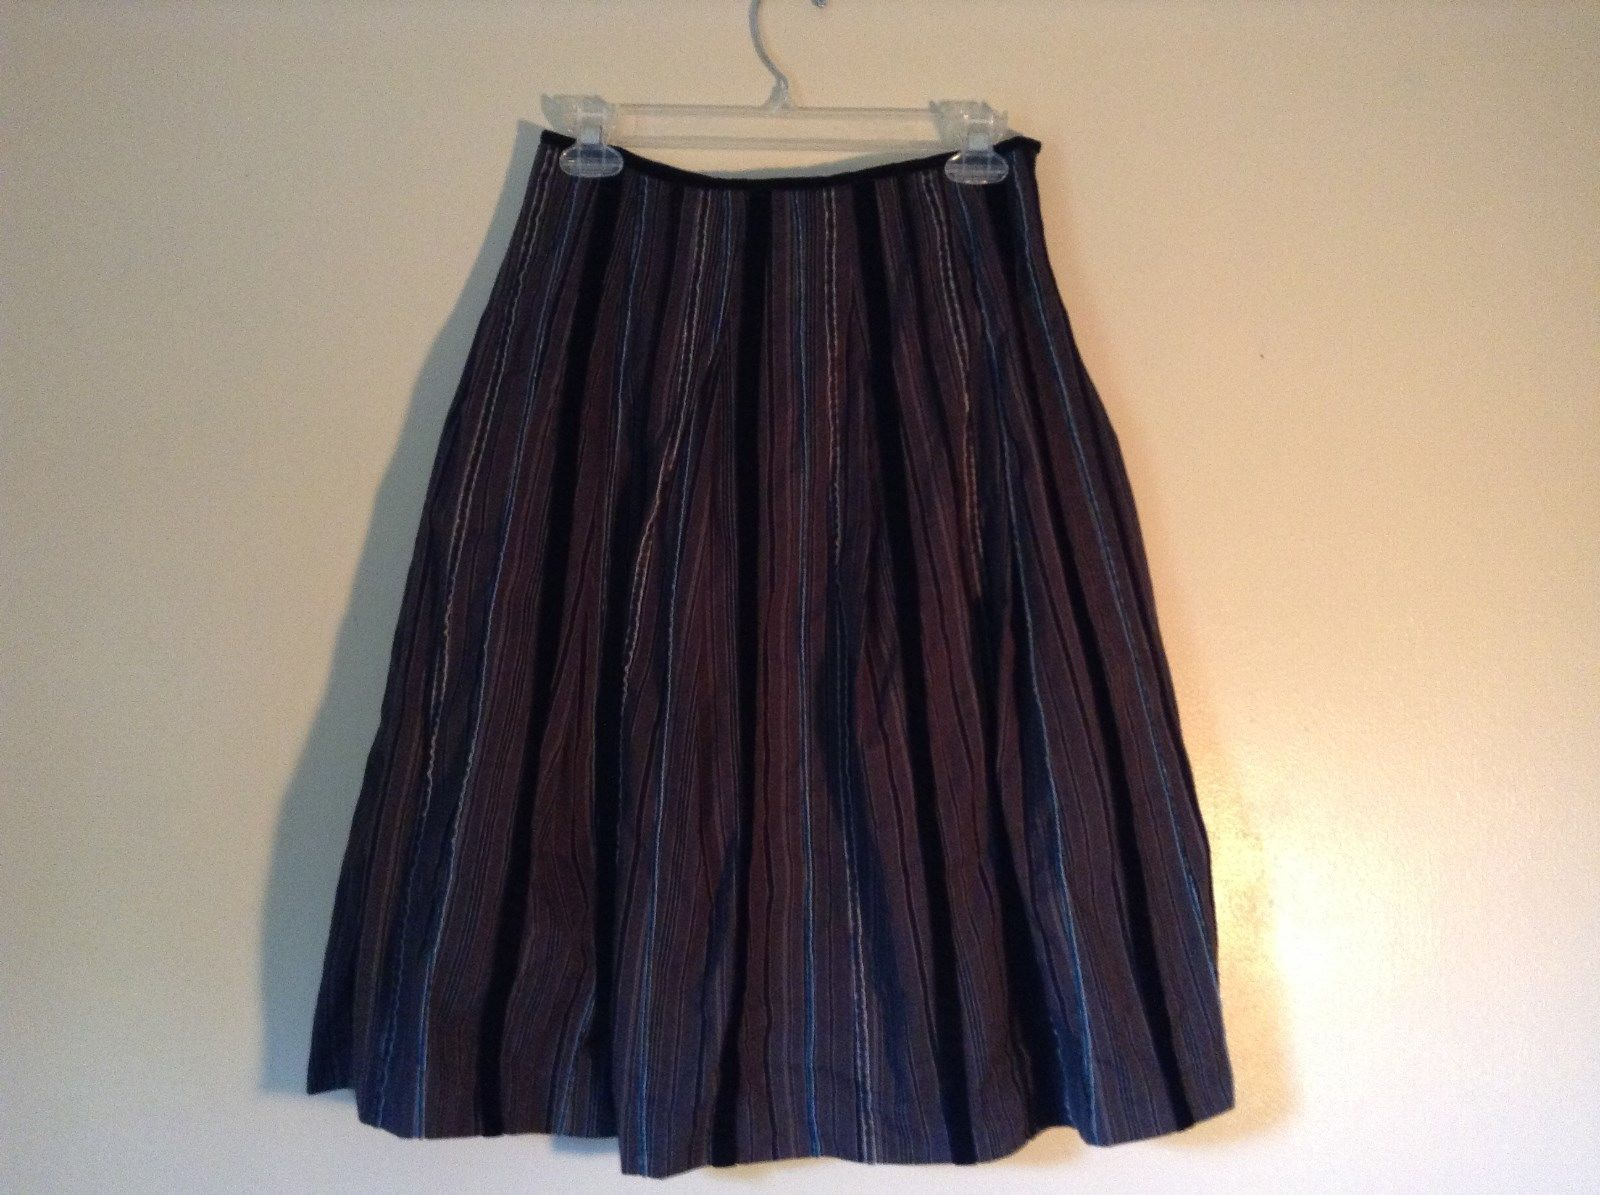 Talbots Striped Gray Black White Blue Formal Casual Skirt Size 4